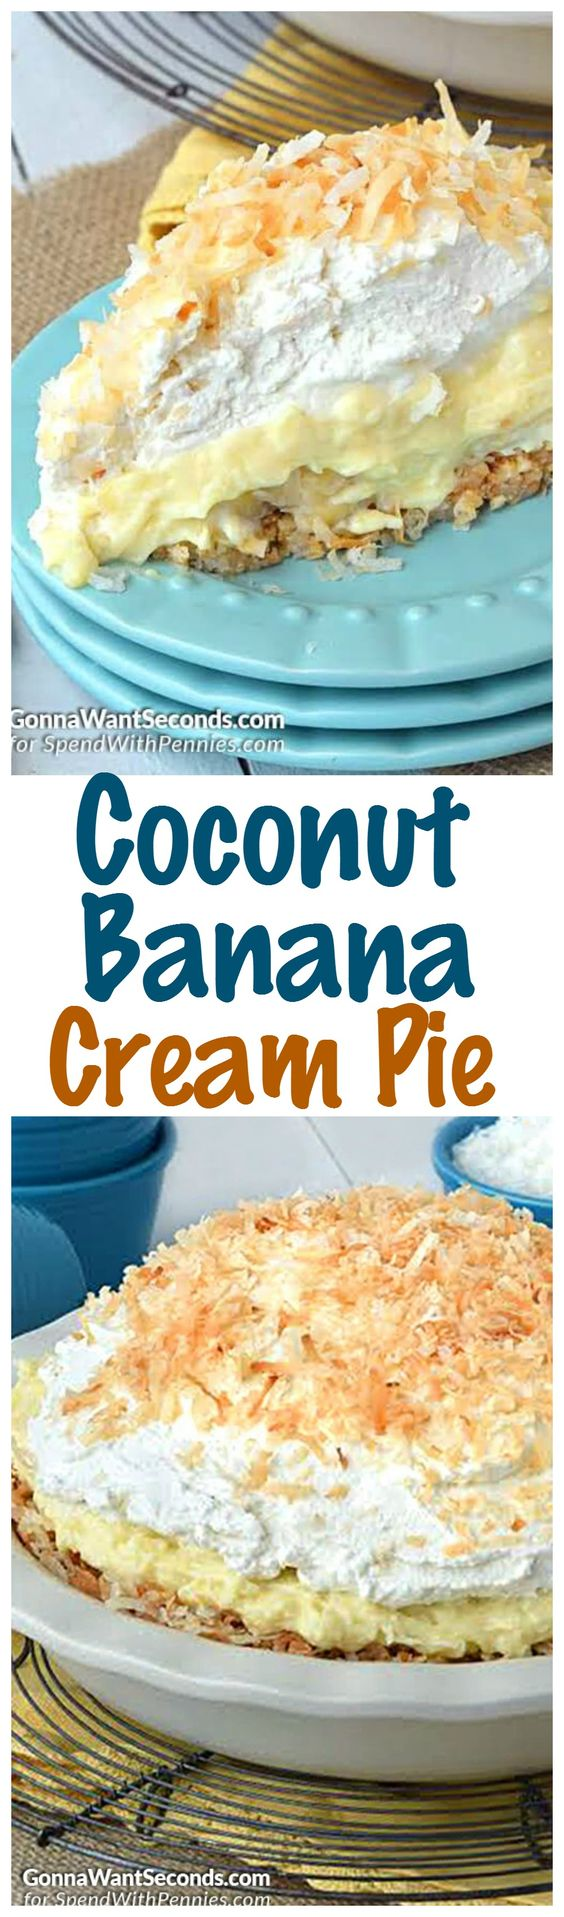 Coconut Banana Cream pie is loaded with a triple dose of coconut, a from scratch homemade custard & a decadent coconut crust.